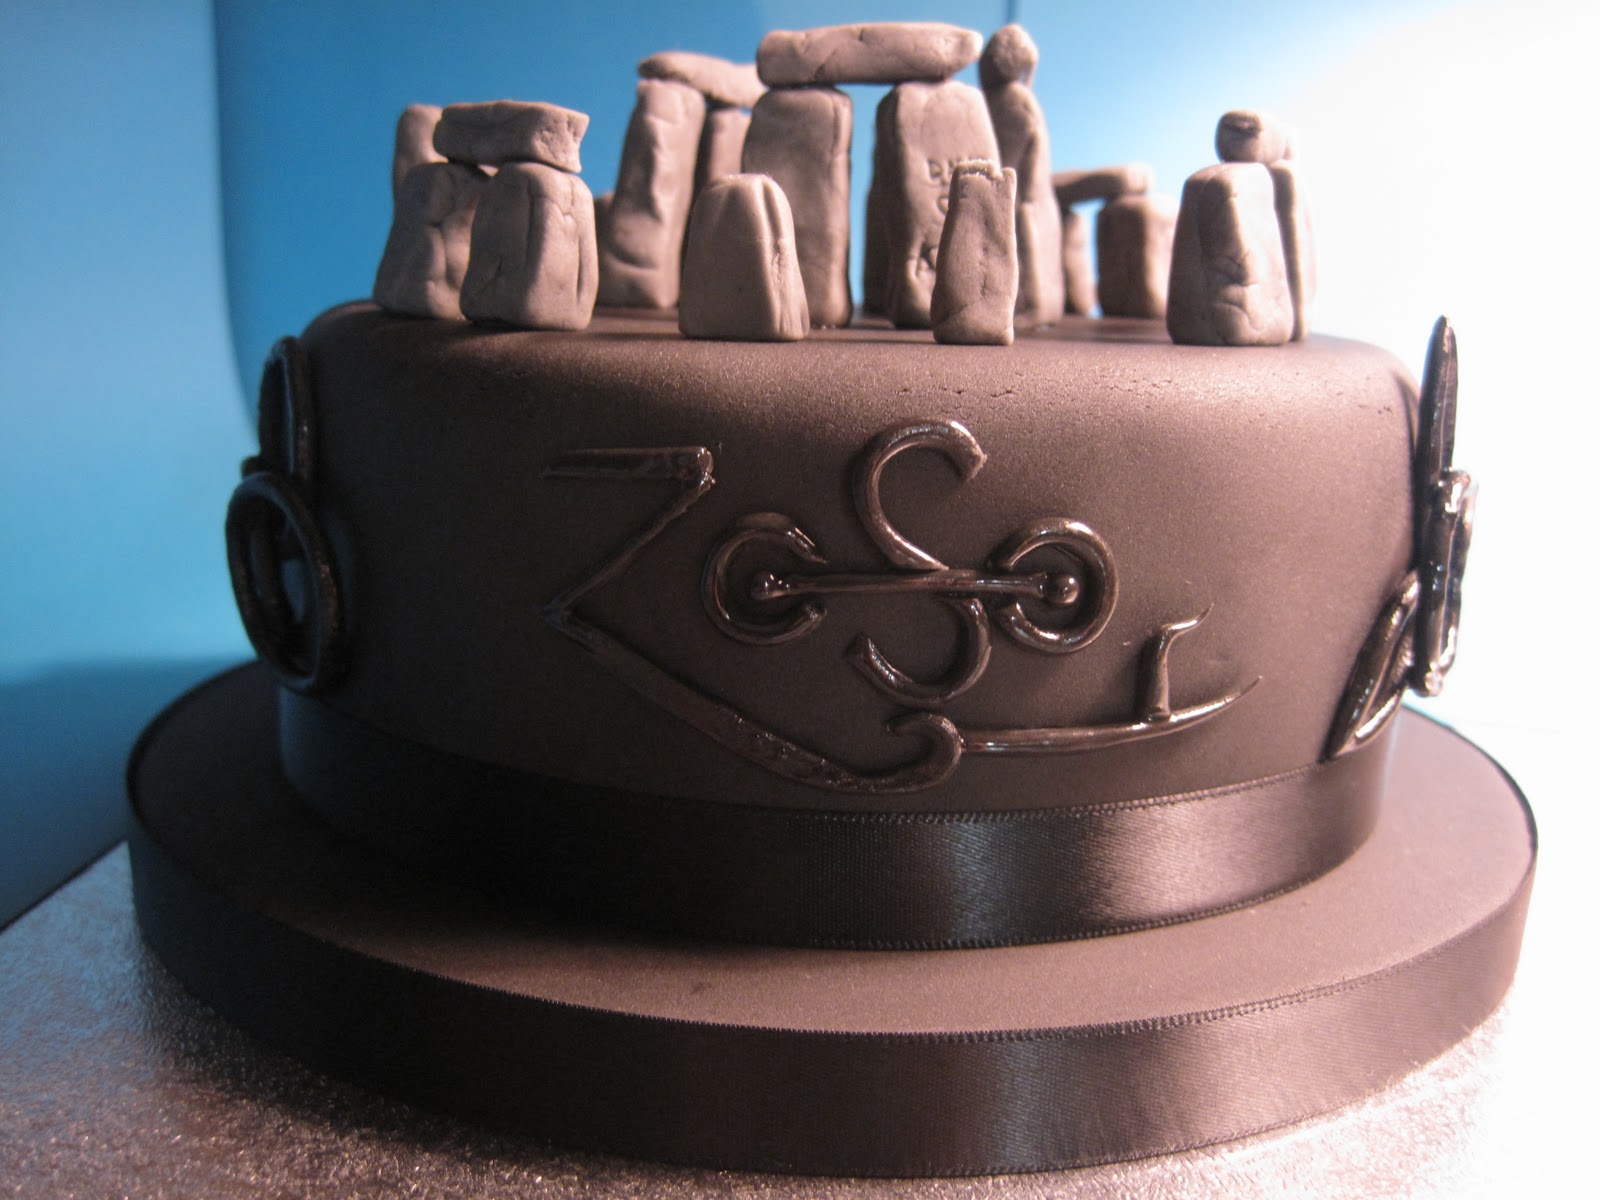 led-zeppelin-music-theme-customised-cake